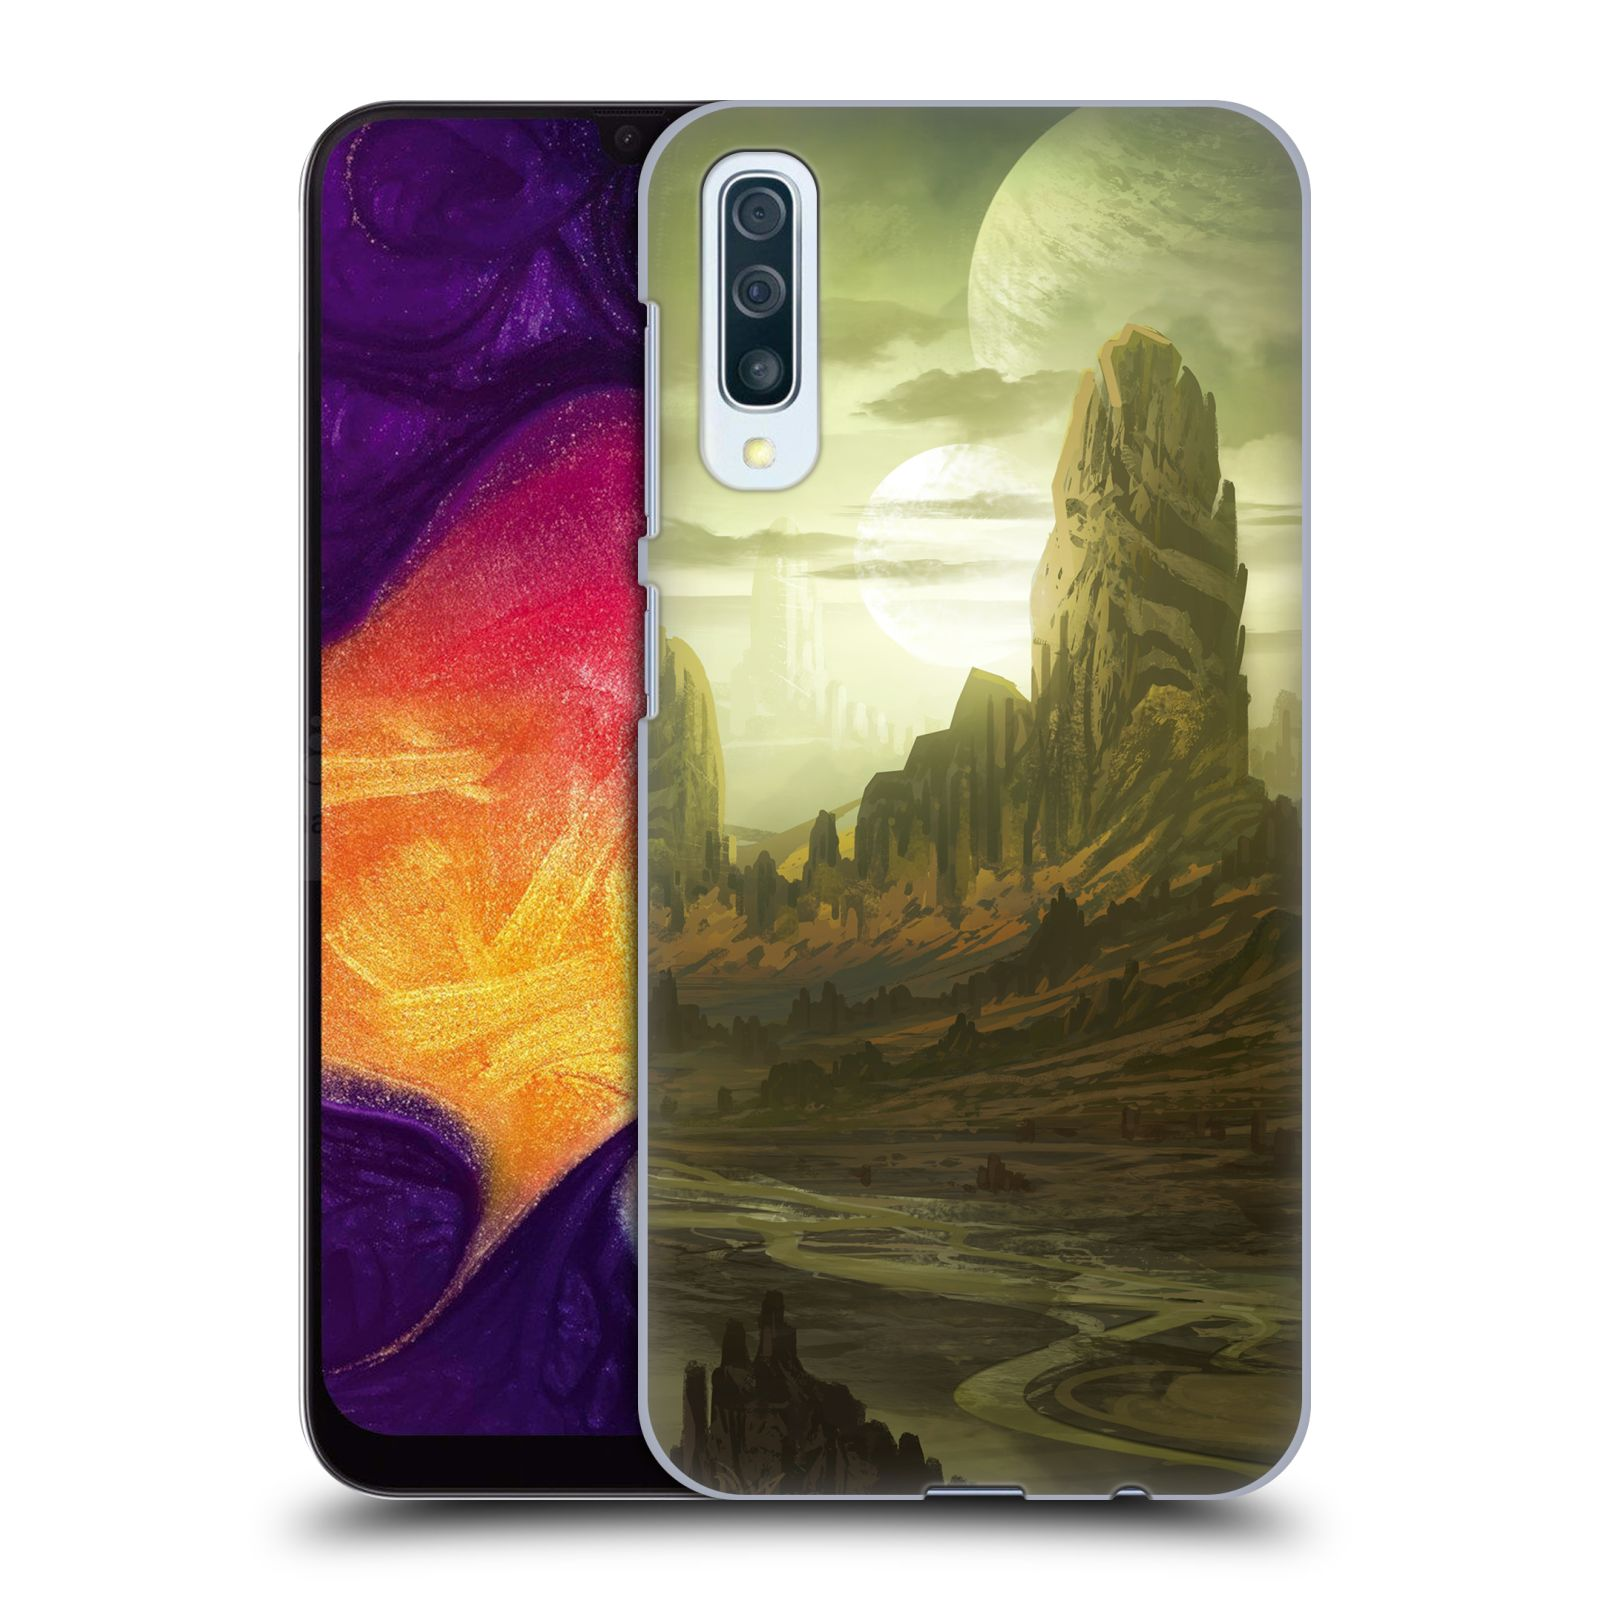 Official Alyn Spiller Environment Art Alien Landscape Case for Samsung Galaxy A50/A30s (2019)